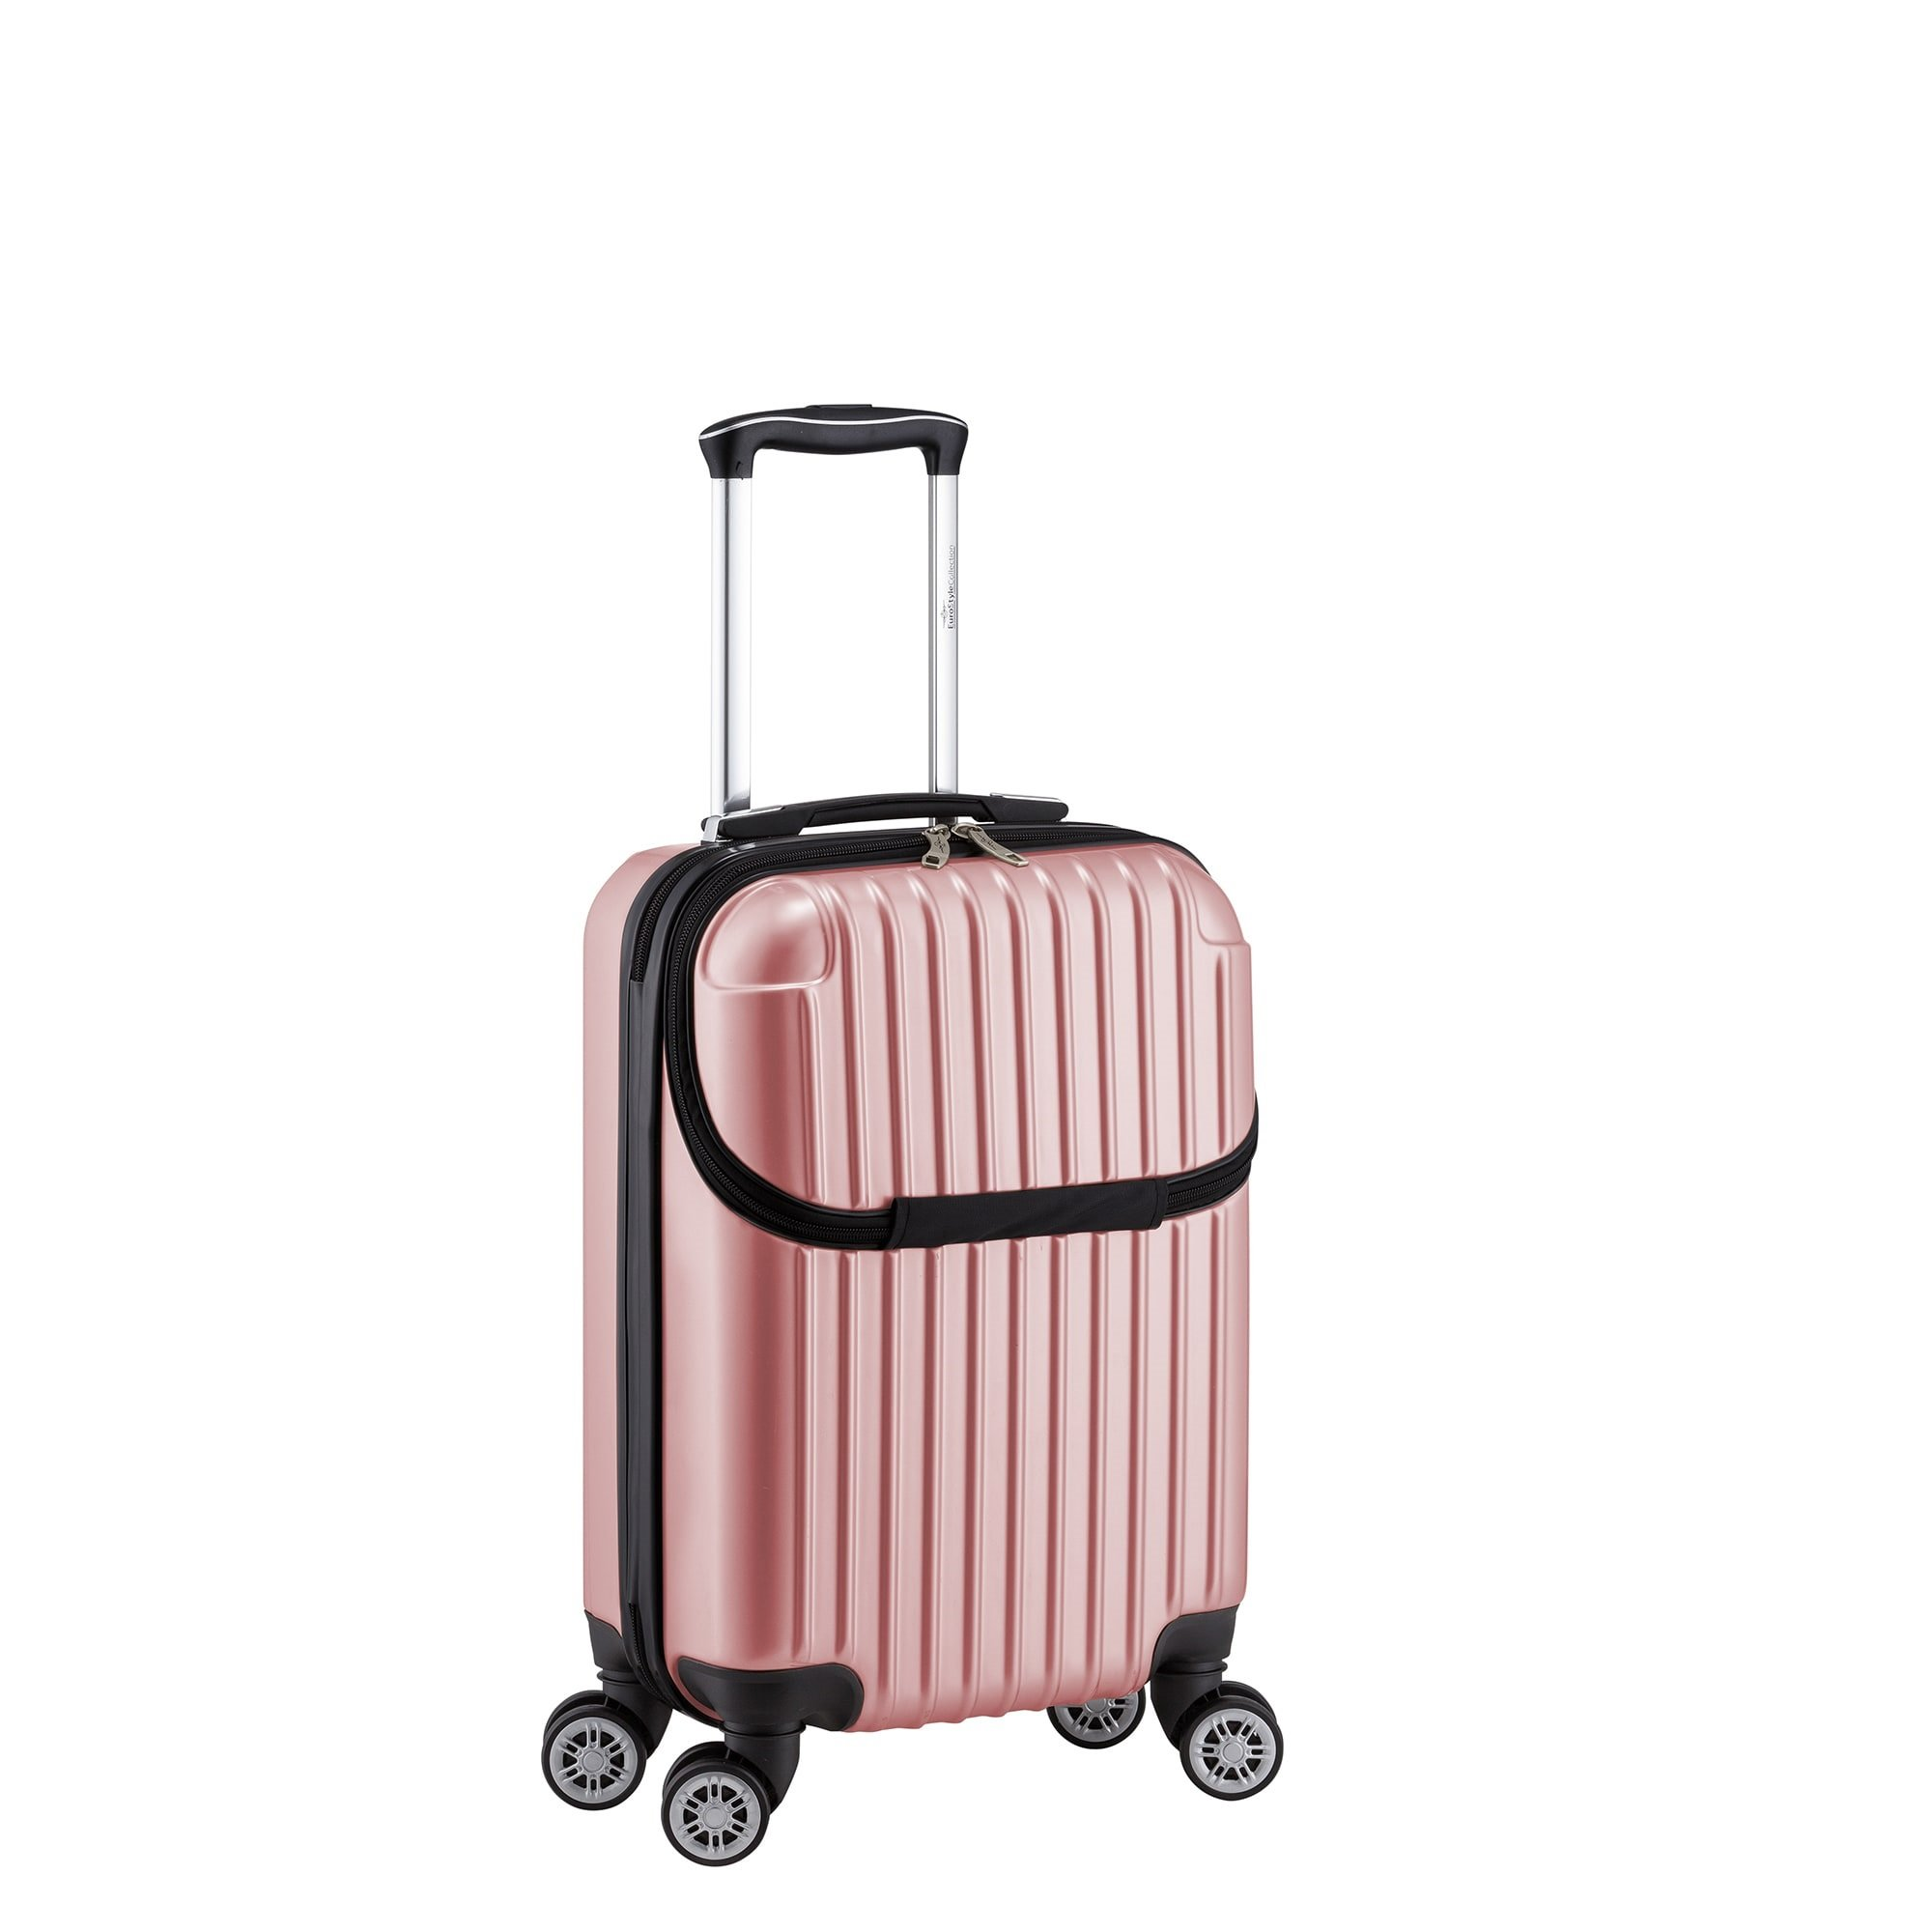 Pastel Geometric Strips Themed Spinner Lightweight Expandable Carry On Luggage Suitcase, Graphic Vertical Stripes Pattern, Hardsided, Fashionable, Multi Compartment, Hard Travel Case, Pink, Size 22'' by S & E